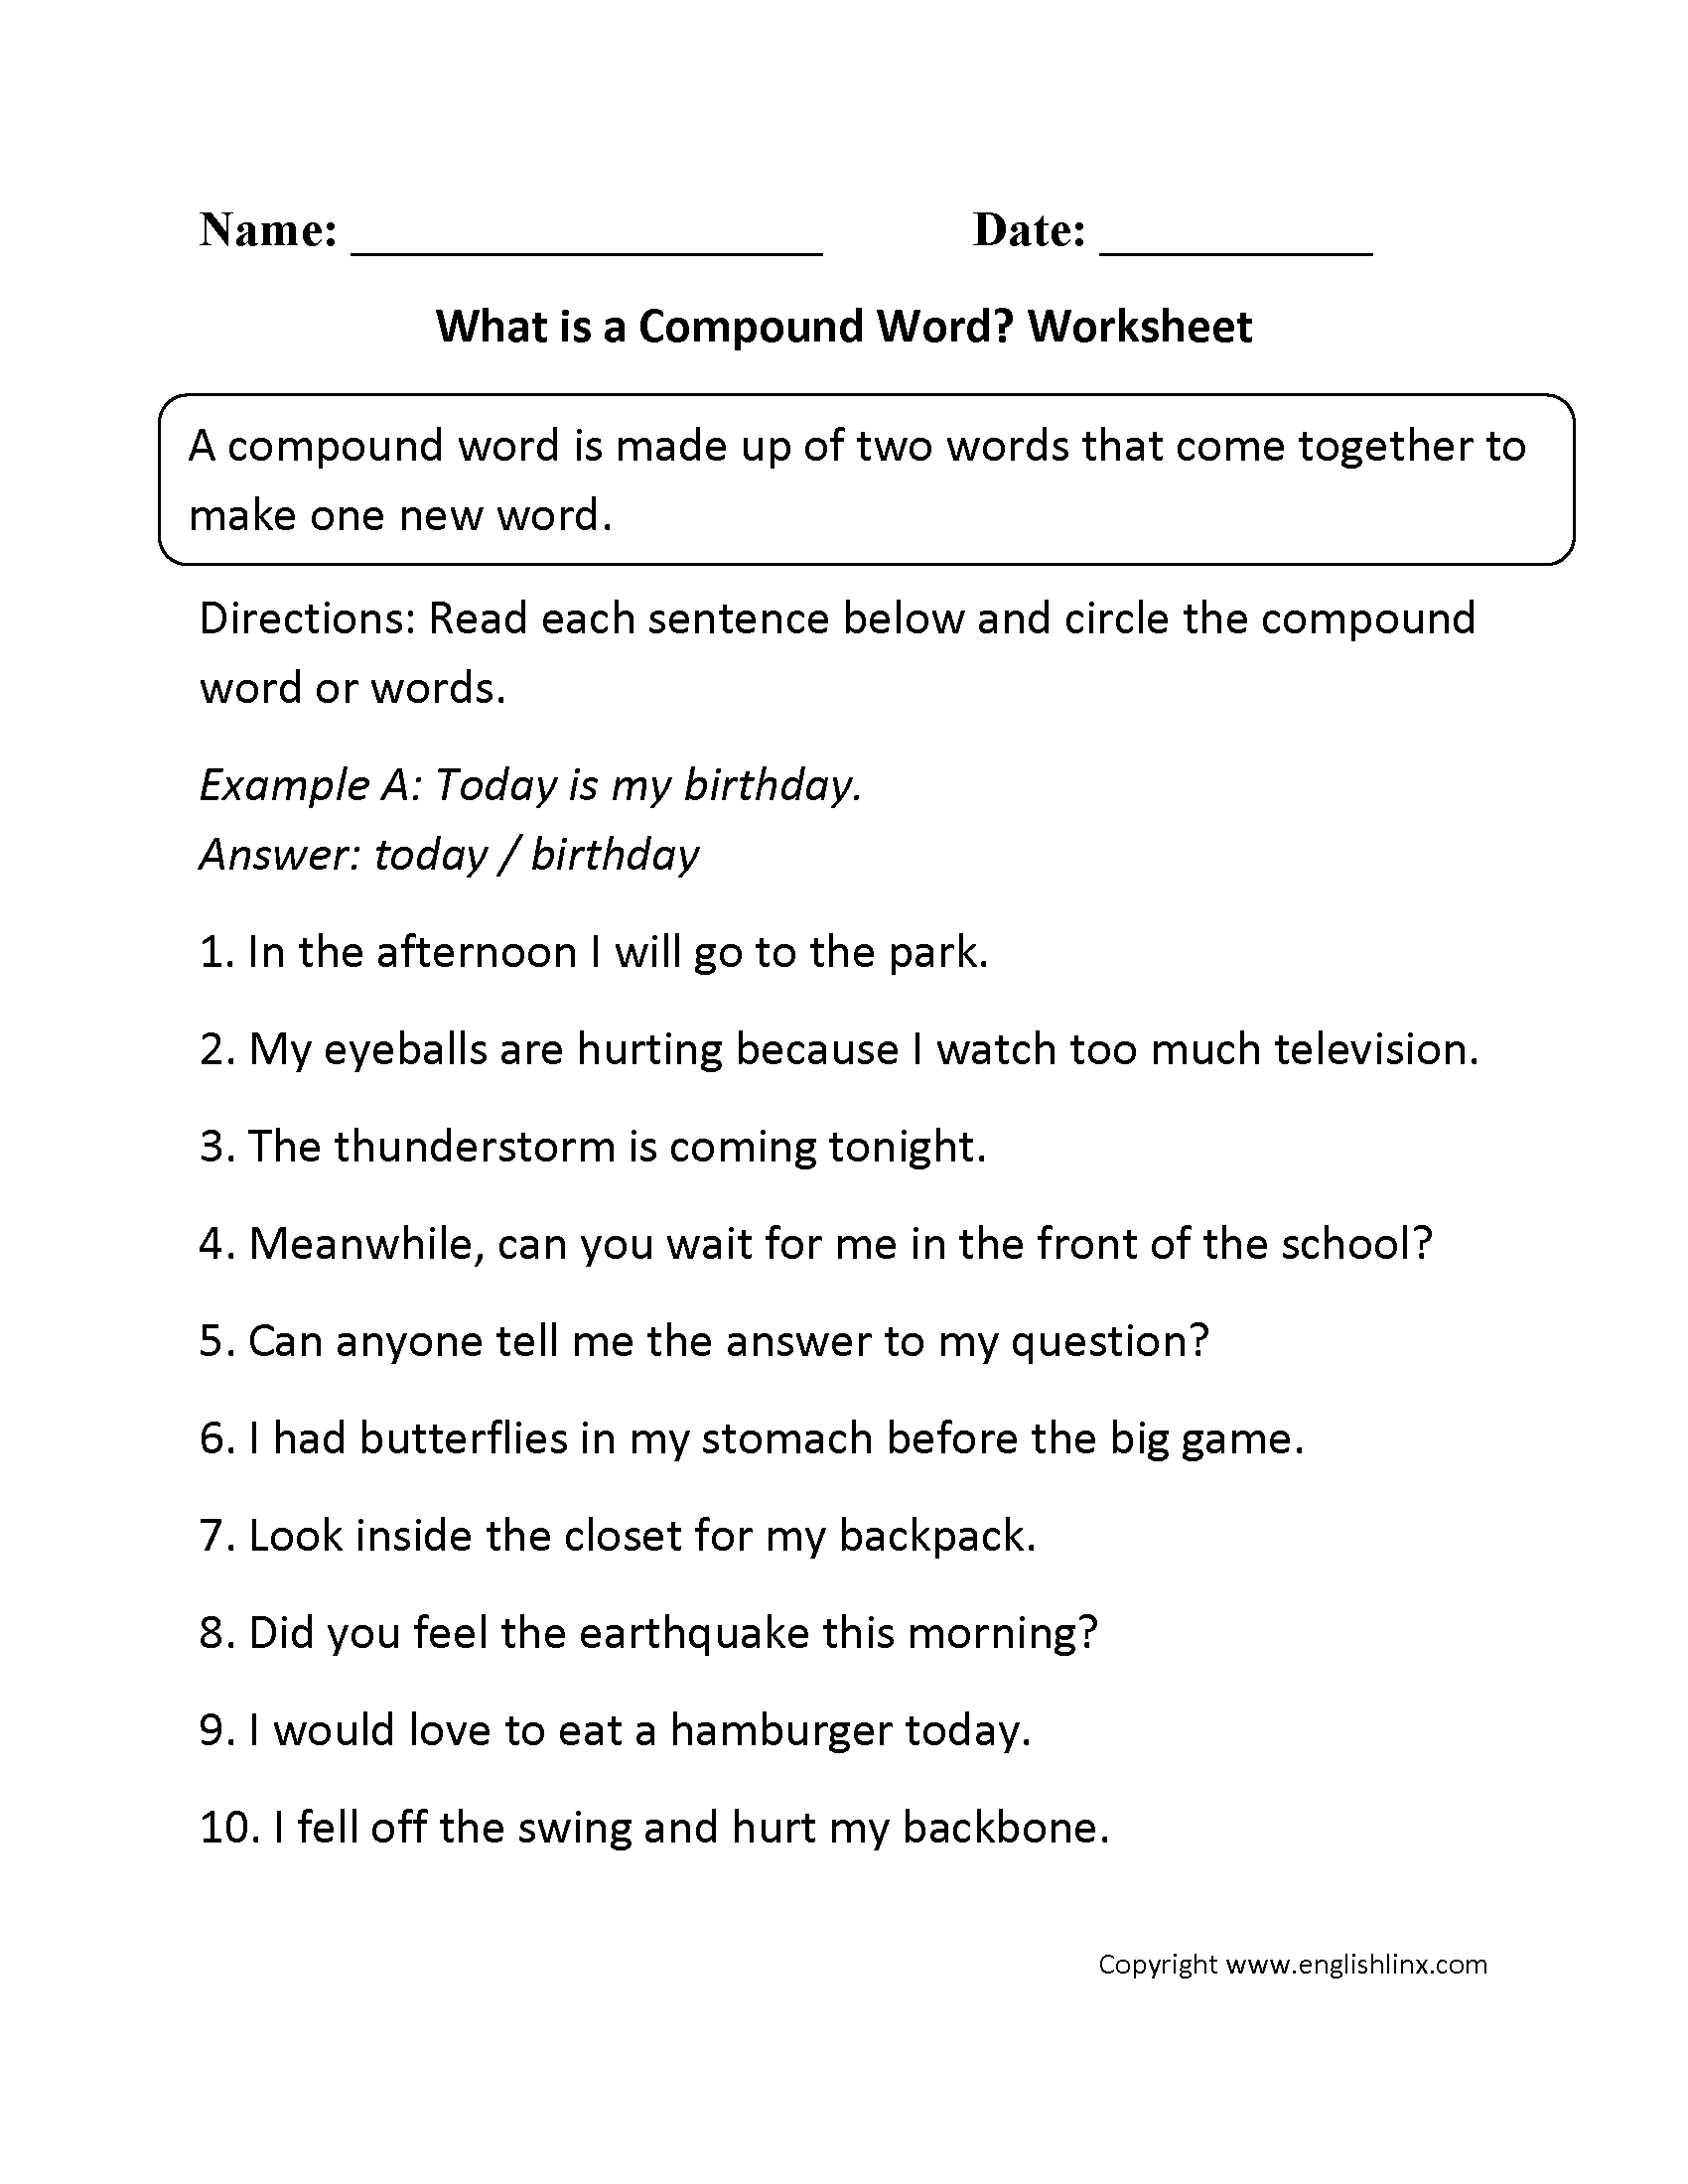 Printables Compound Words Worksheets grammar mechanics worksheets compound words what is a word worksheets